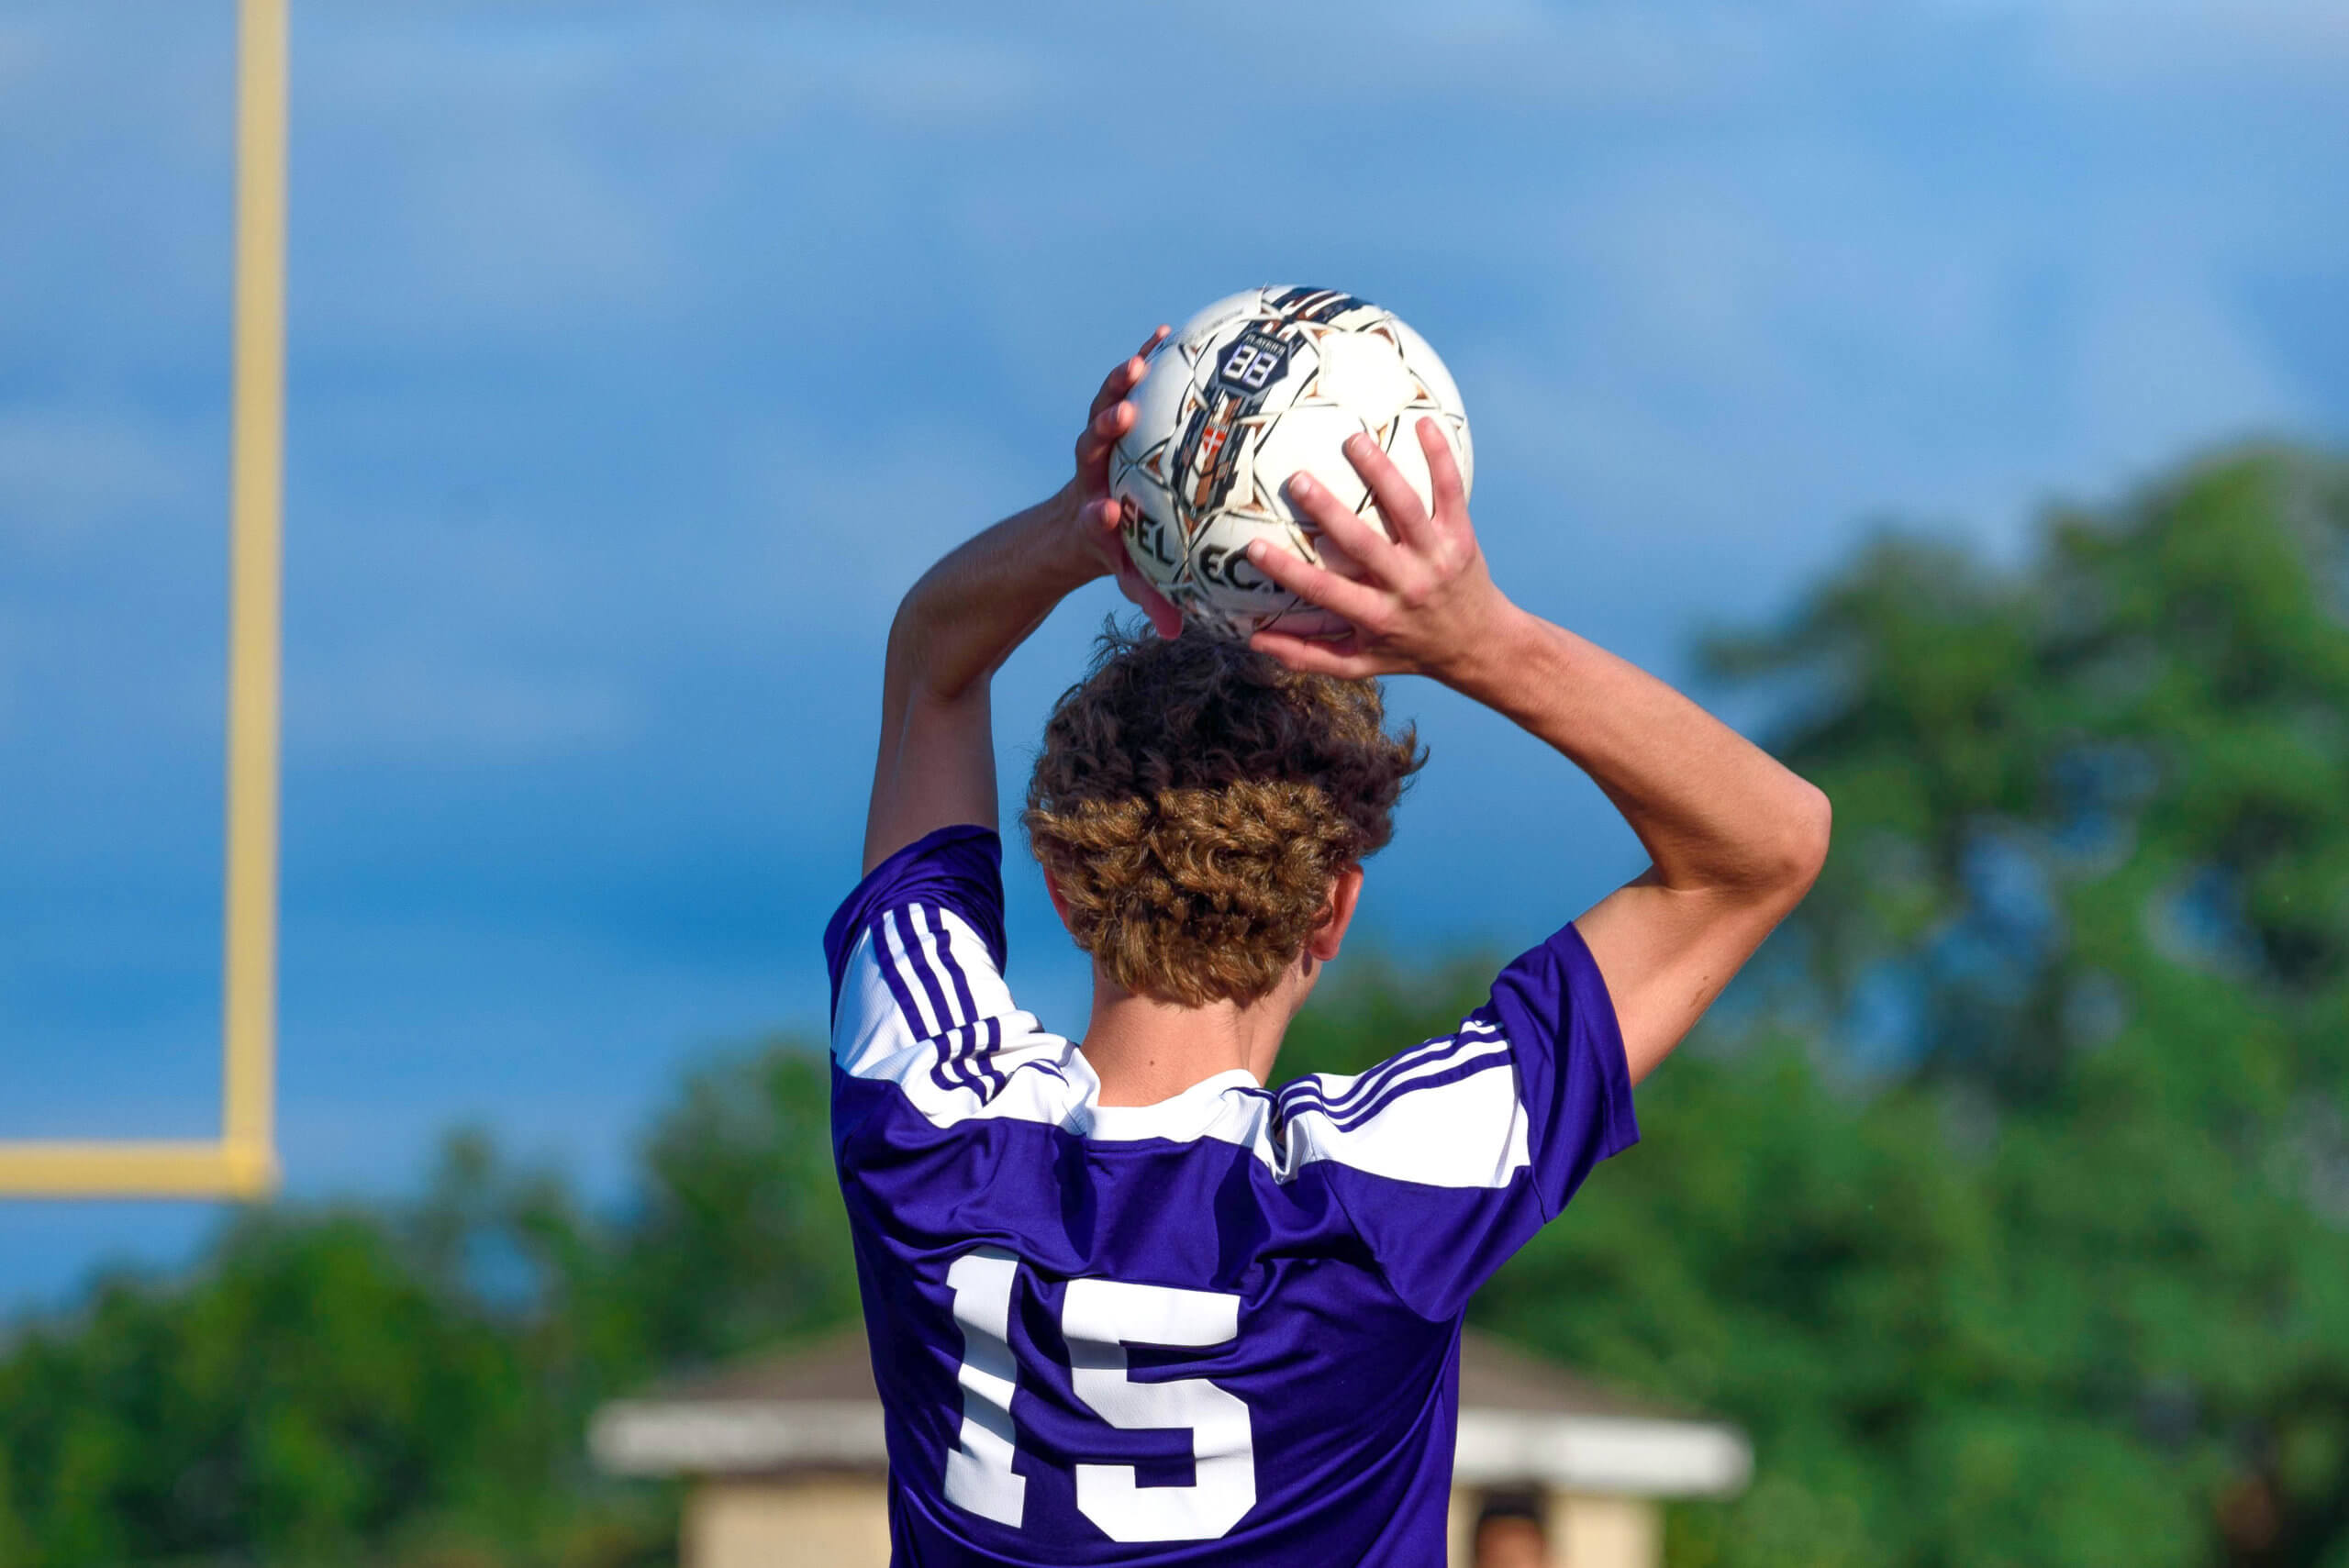 Heads Up HHS Students, Holyoke Fall Sports Tryouts are Coming Up!